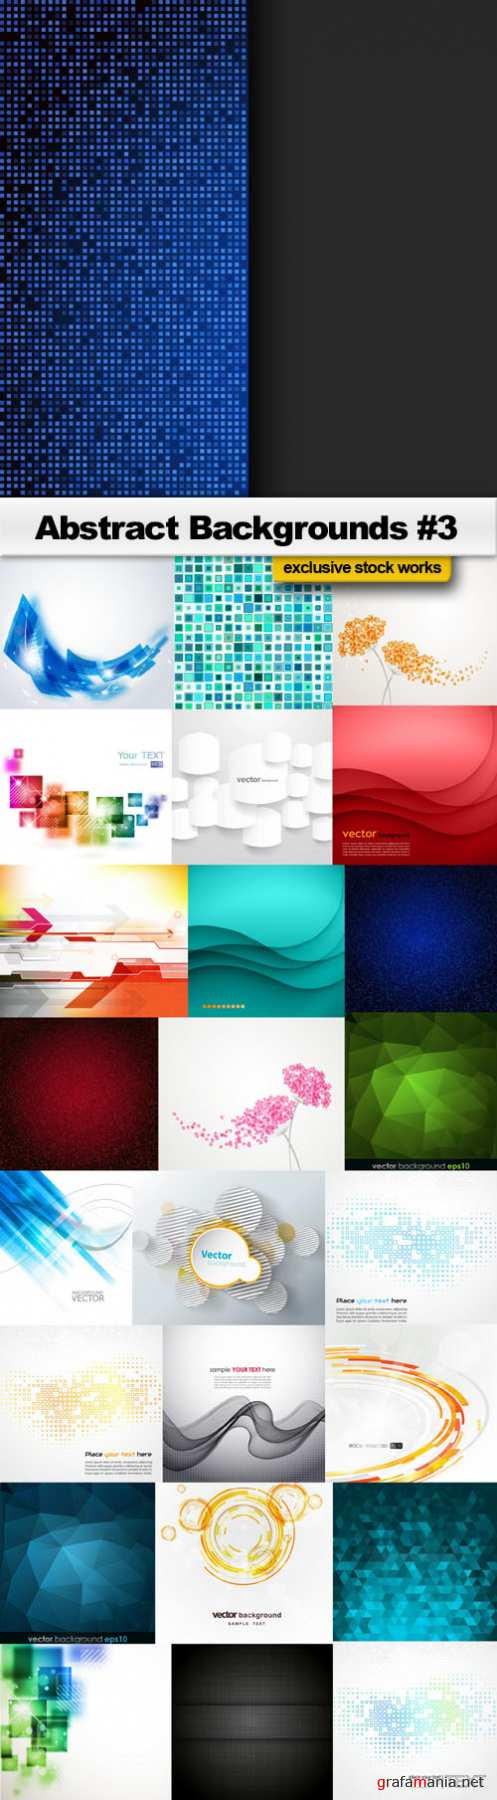 Abstract Backgrounds #3 - 25 EPS